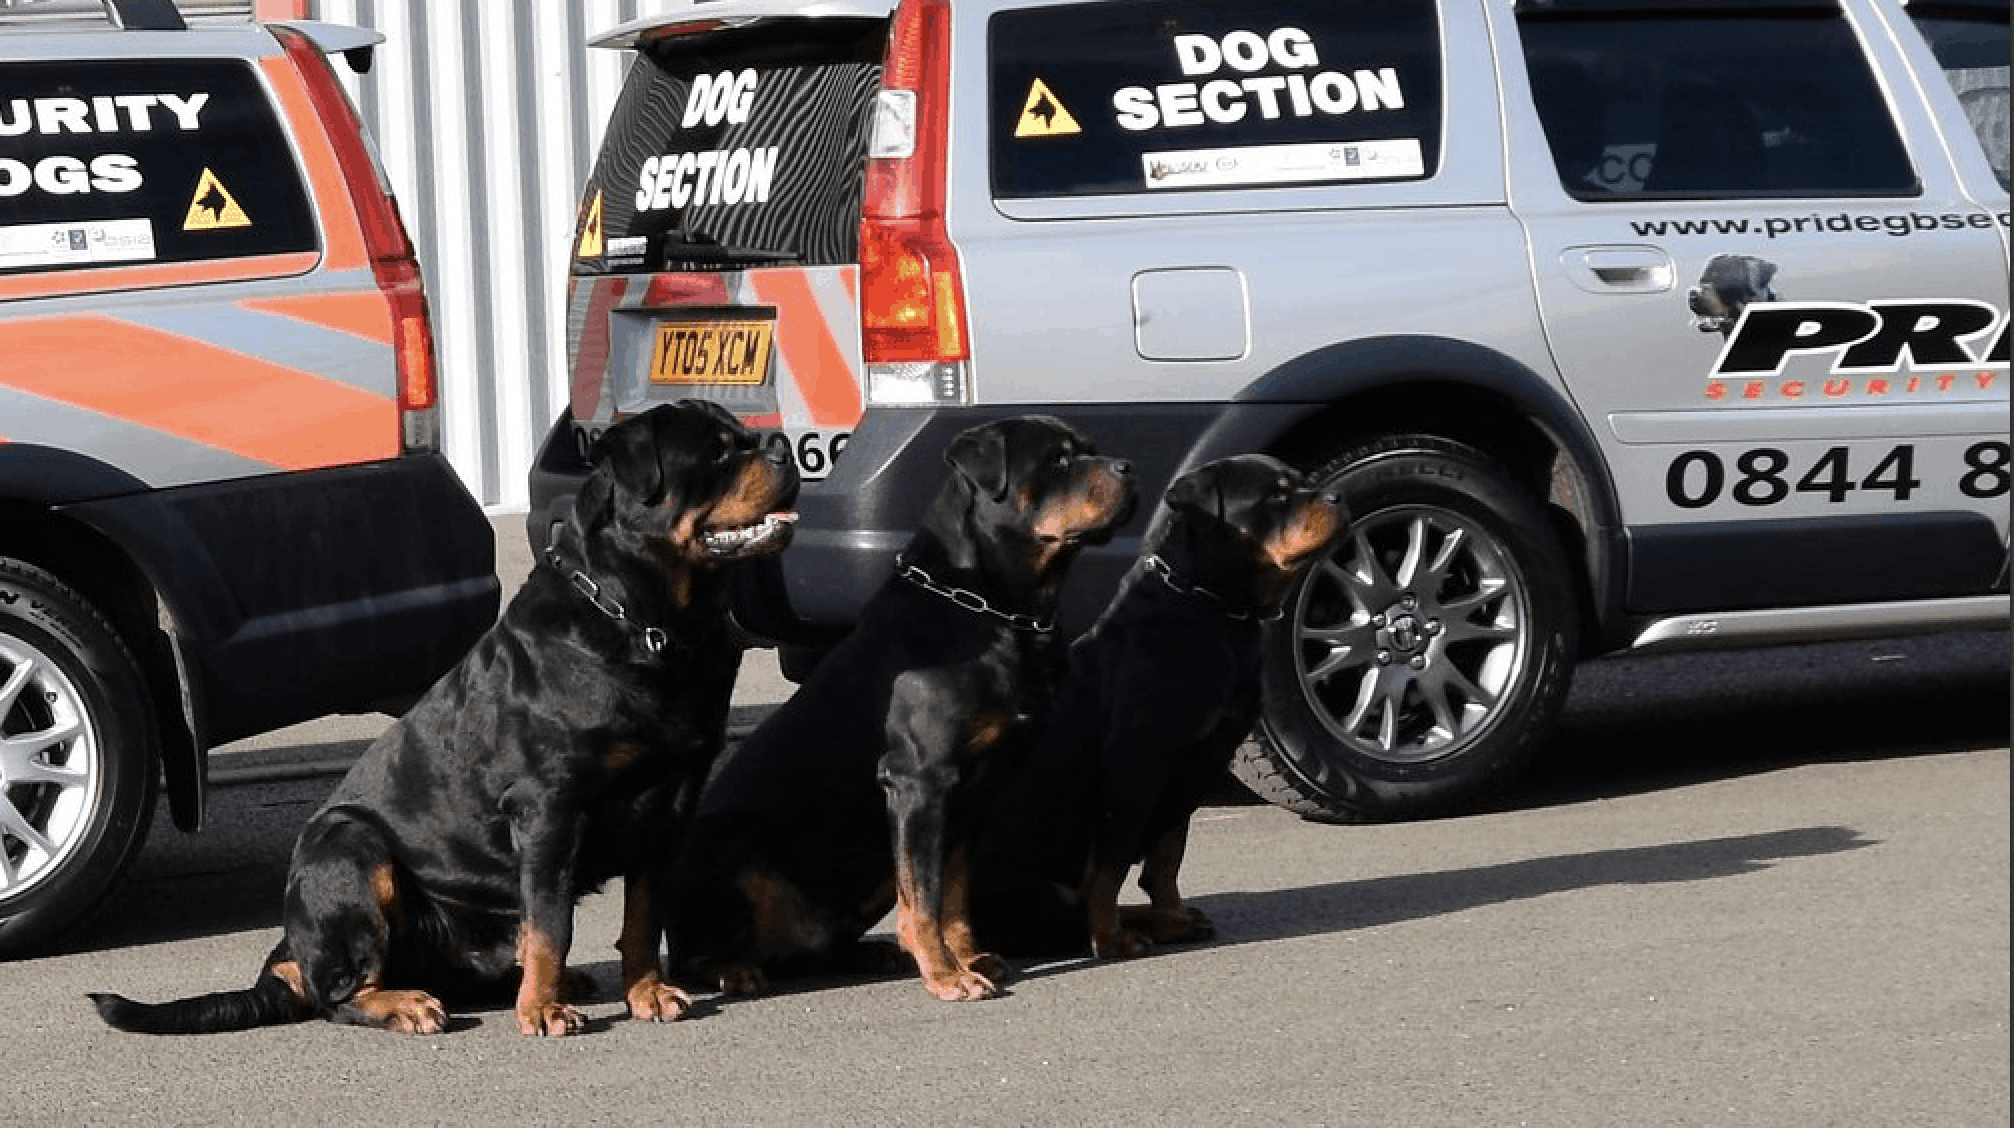 Pride GB dog section